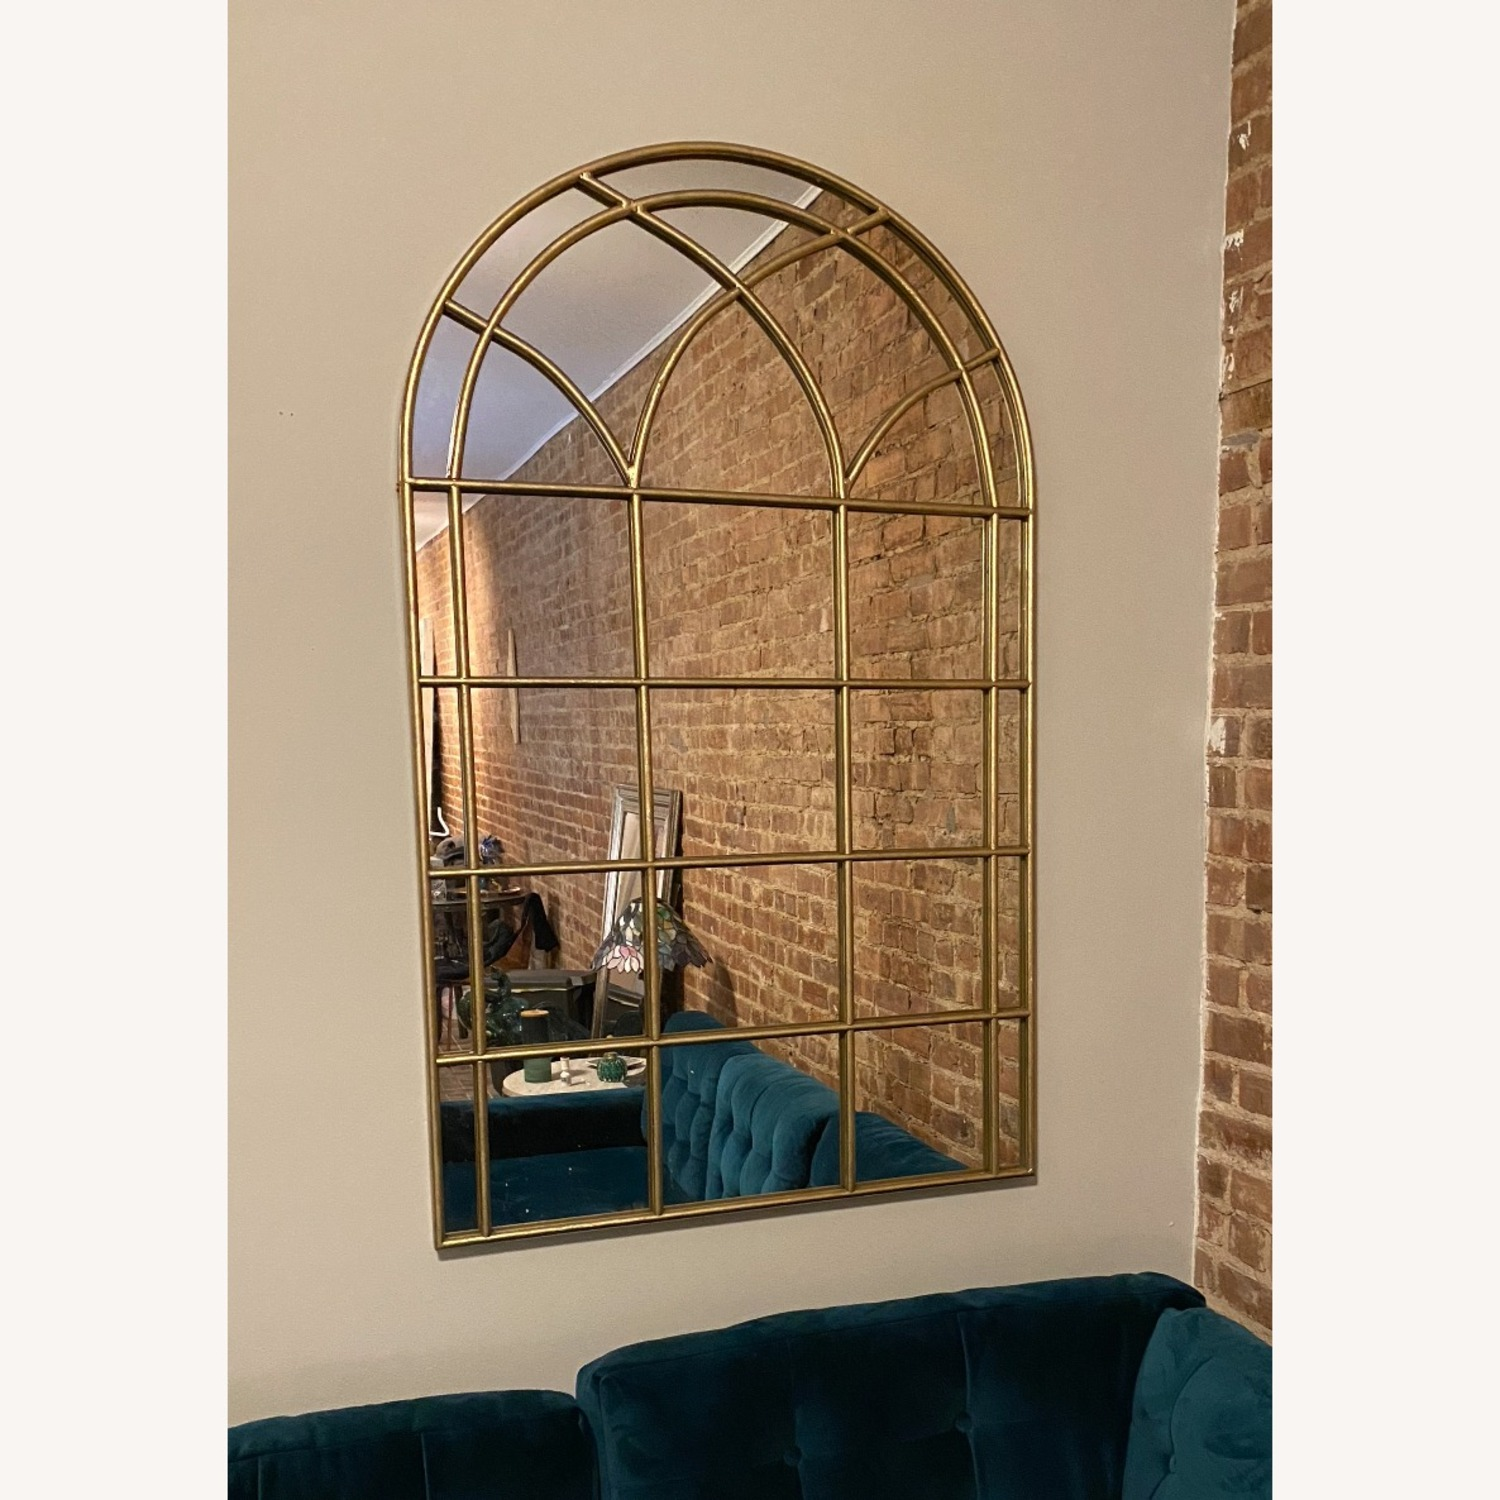 Pier 1 Imports Gold Arch Mirrors - image-3